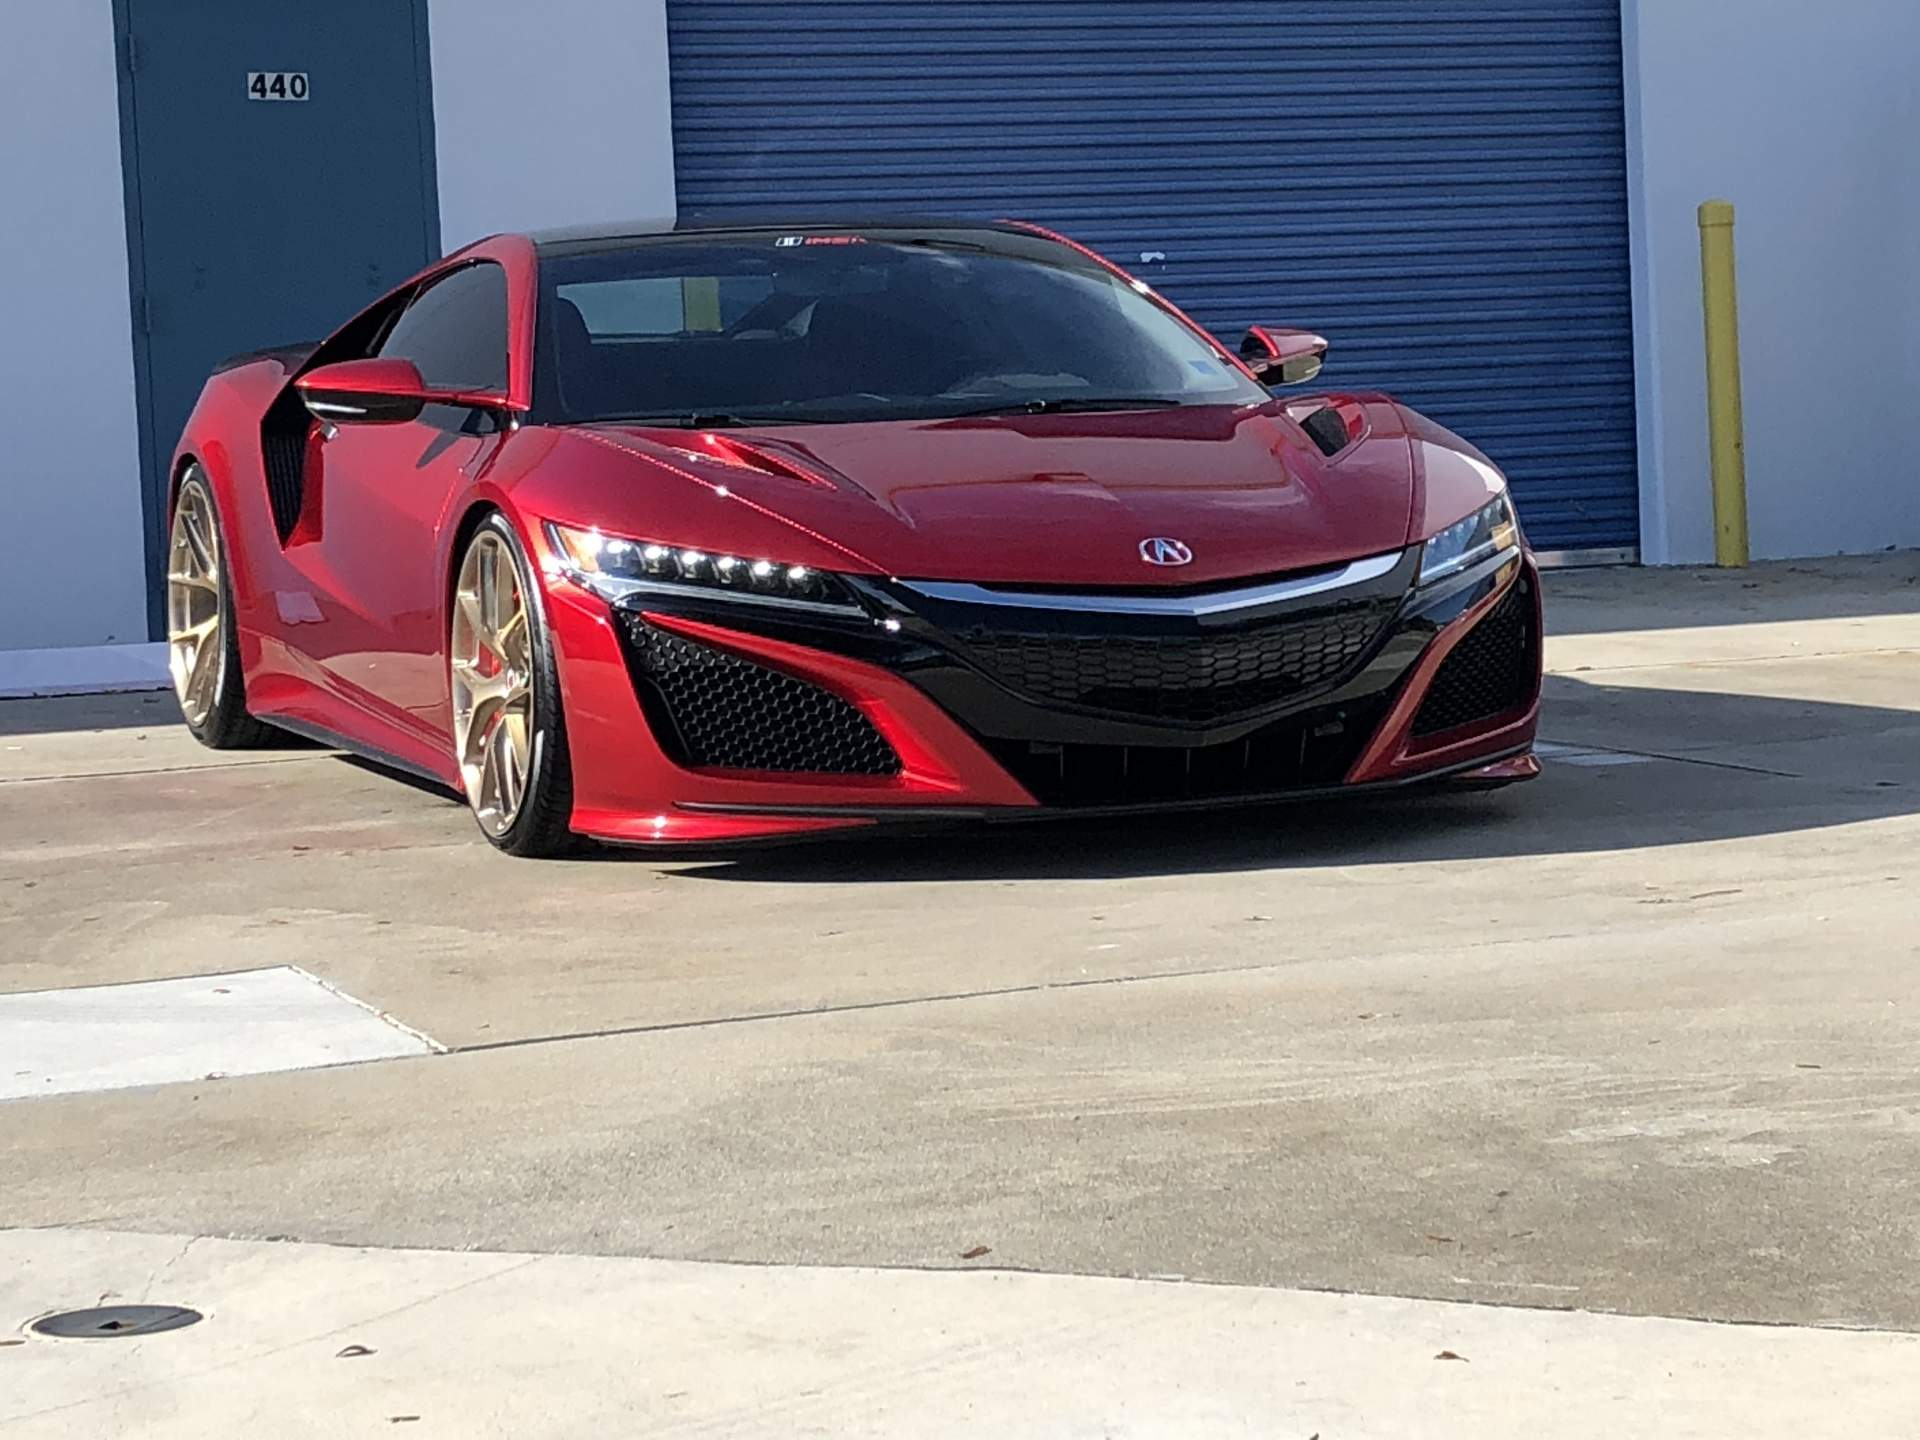 Red Honda NSX shined up shown diagonally